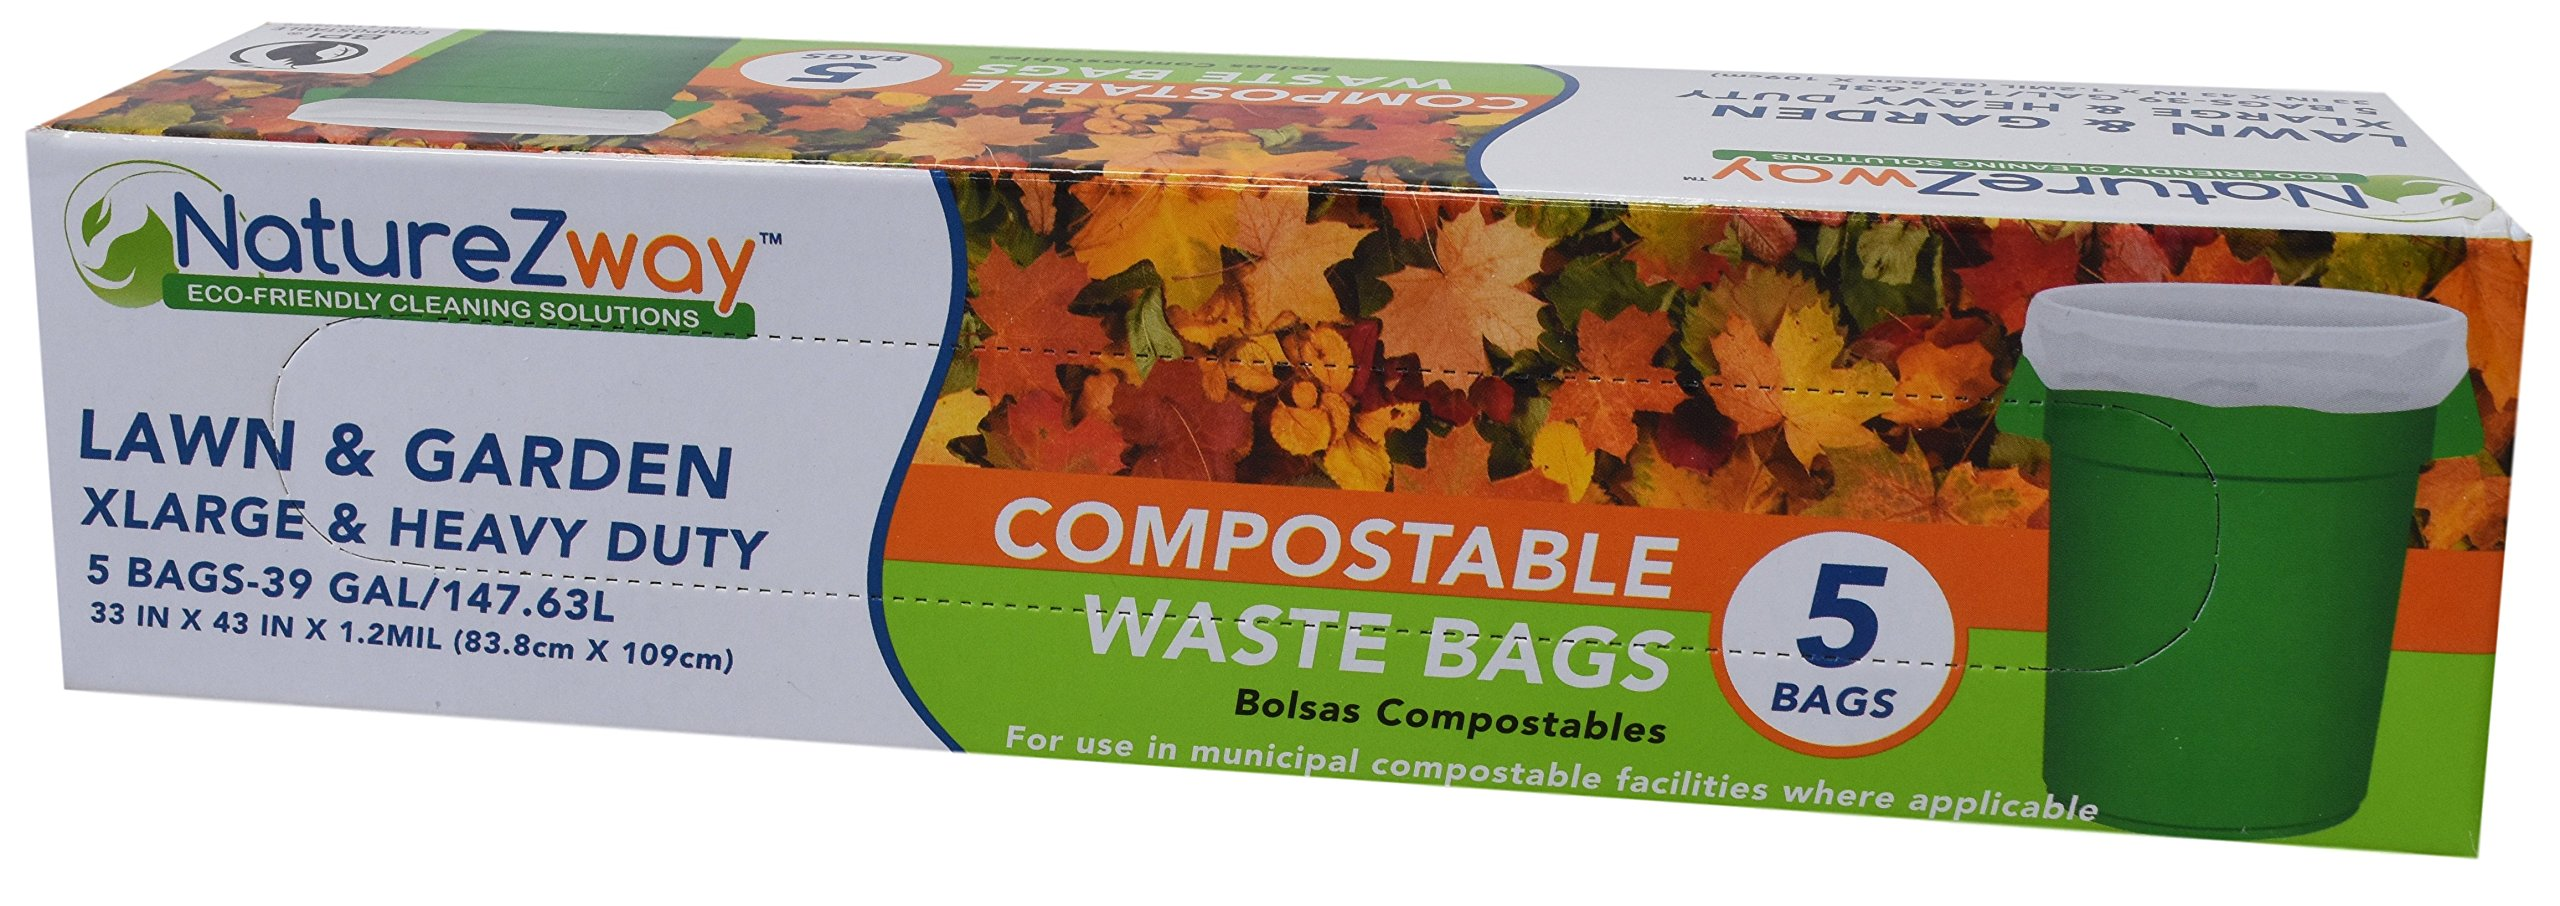 NatureZway - Compostable Waste Bags, 39 Gallon - 5 Count, Pack of 3